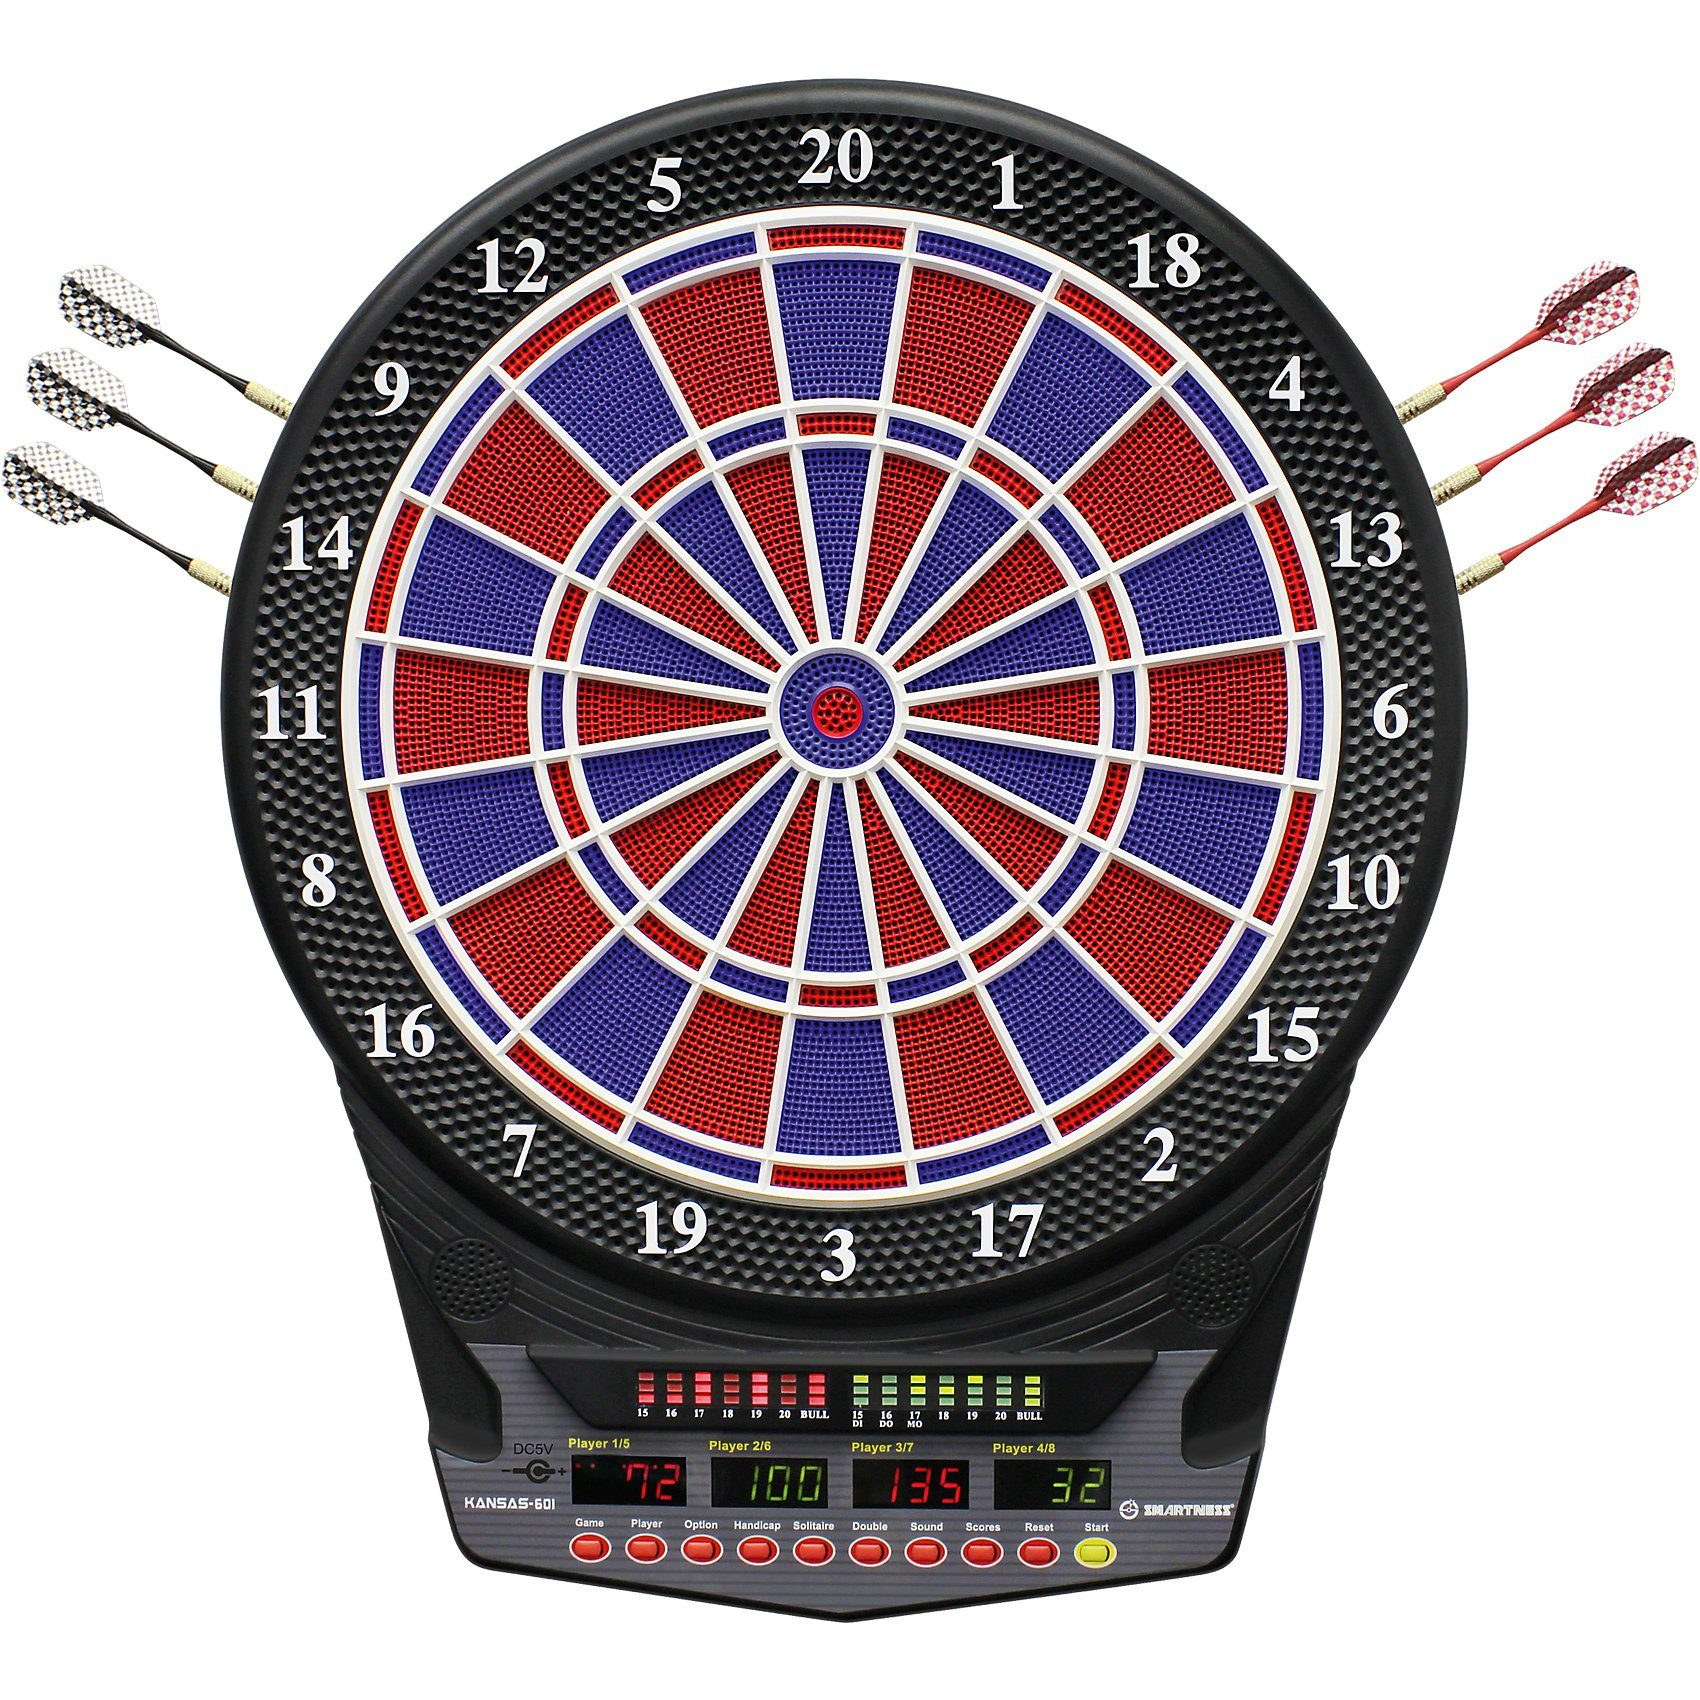 Smartness Elektronik Dartboard Kansas-601